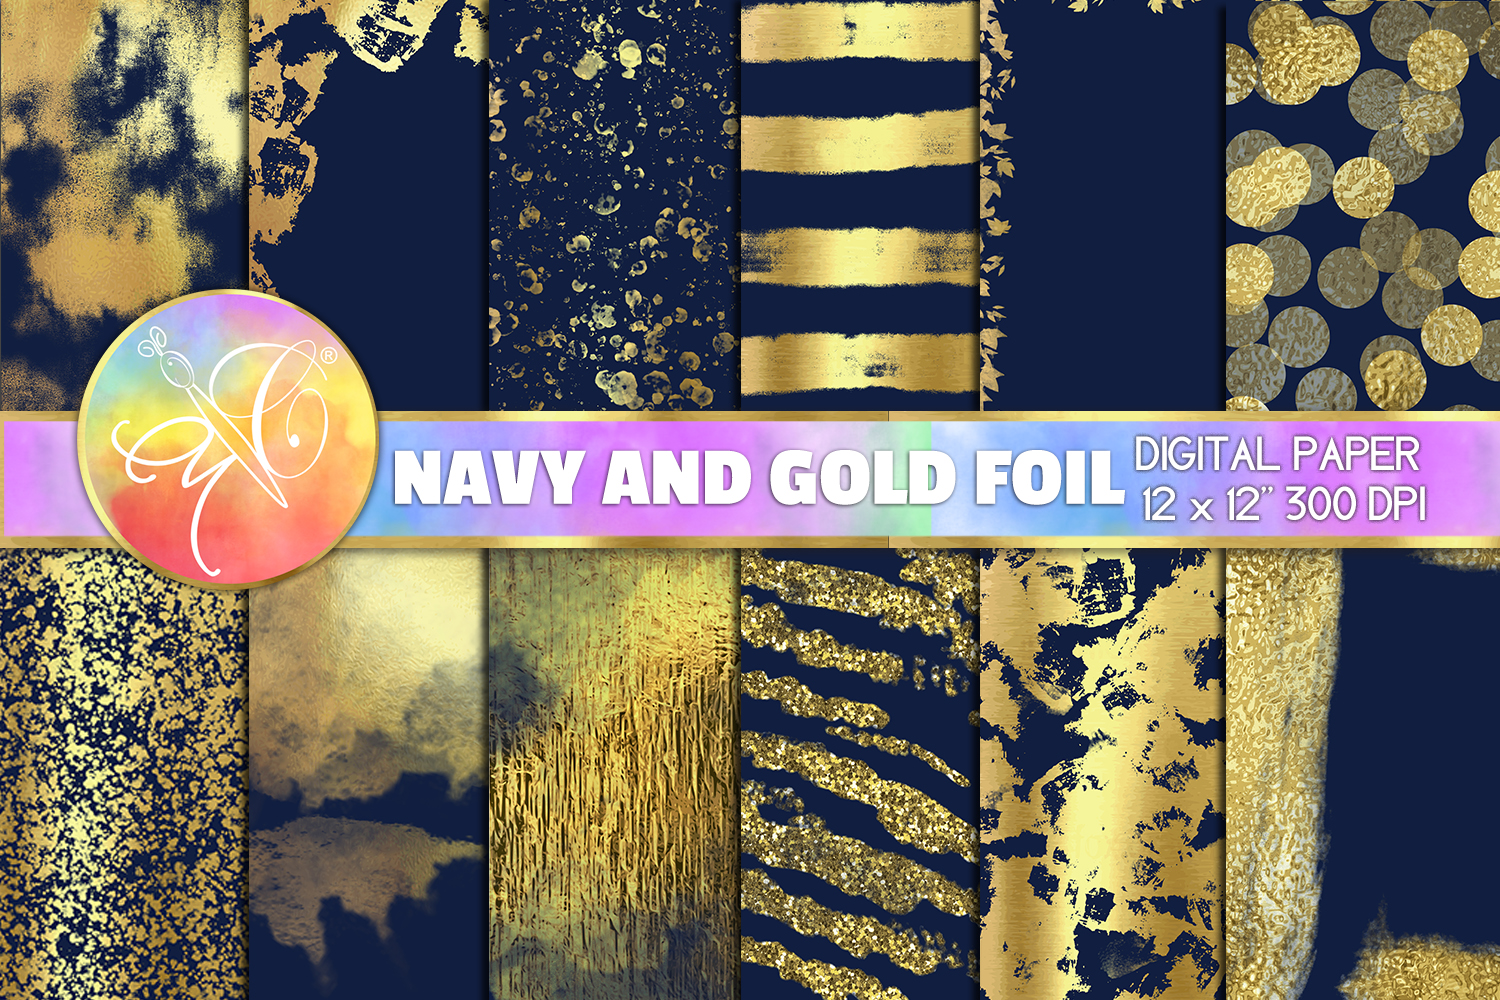 Navy and Gold Foil Digital Paper, Digital Background example image 1